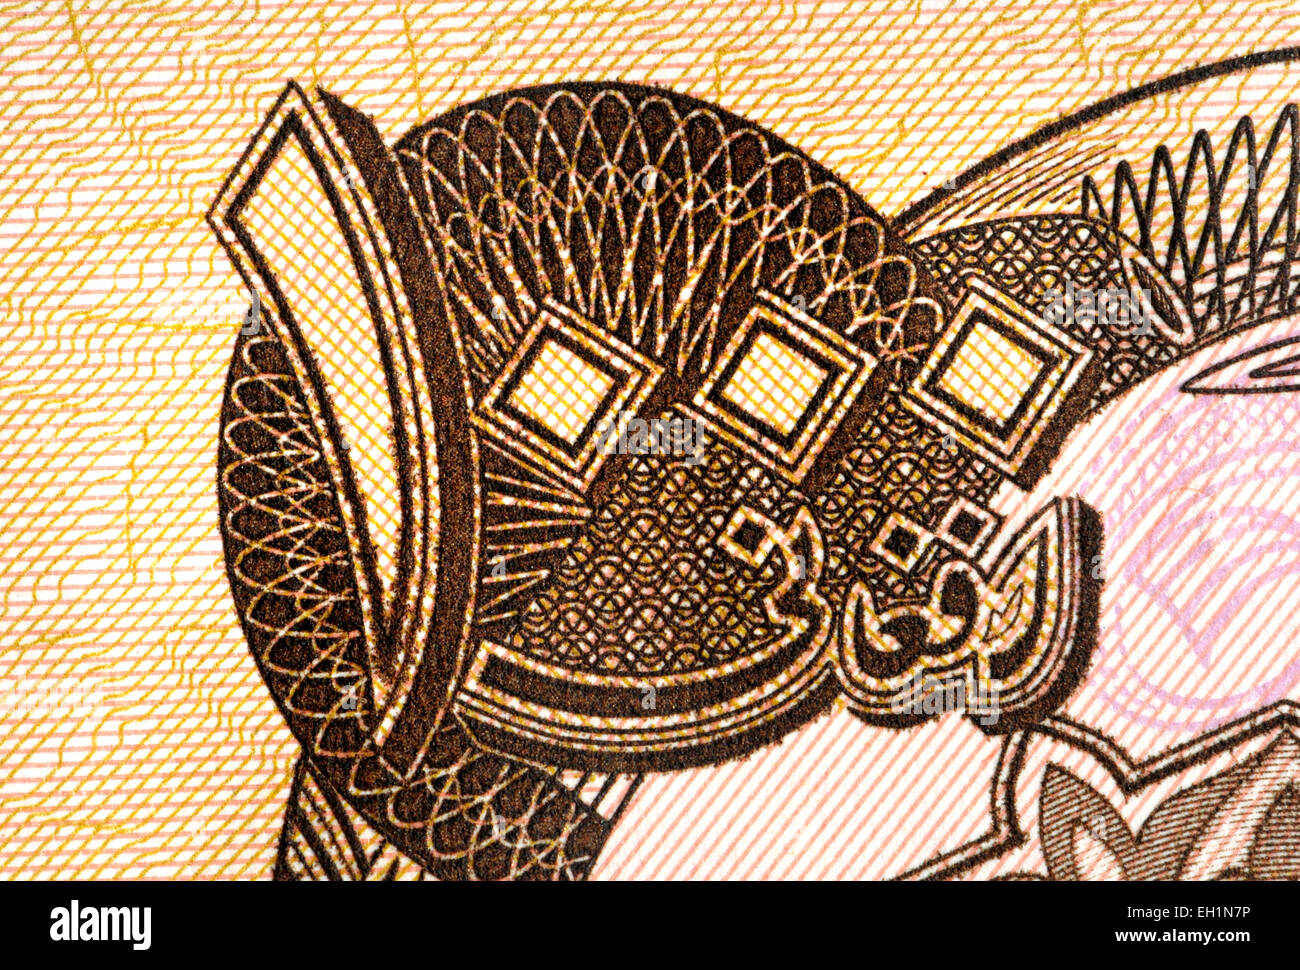 Detail from an Afghan 10,000 Afghani banknote showing the number 1,000 in  Eastern Arabic / Arabic–Indic numerals - Stock Image